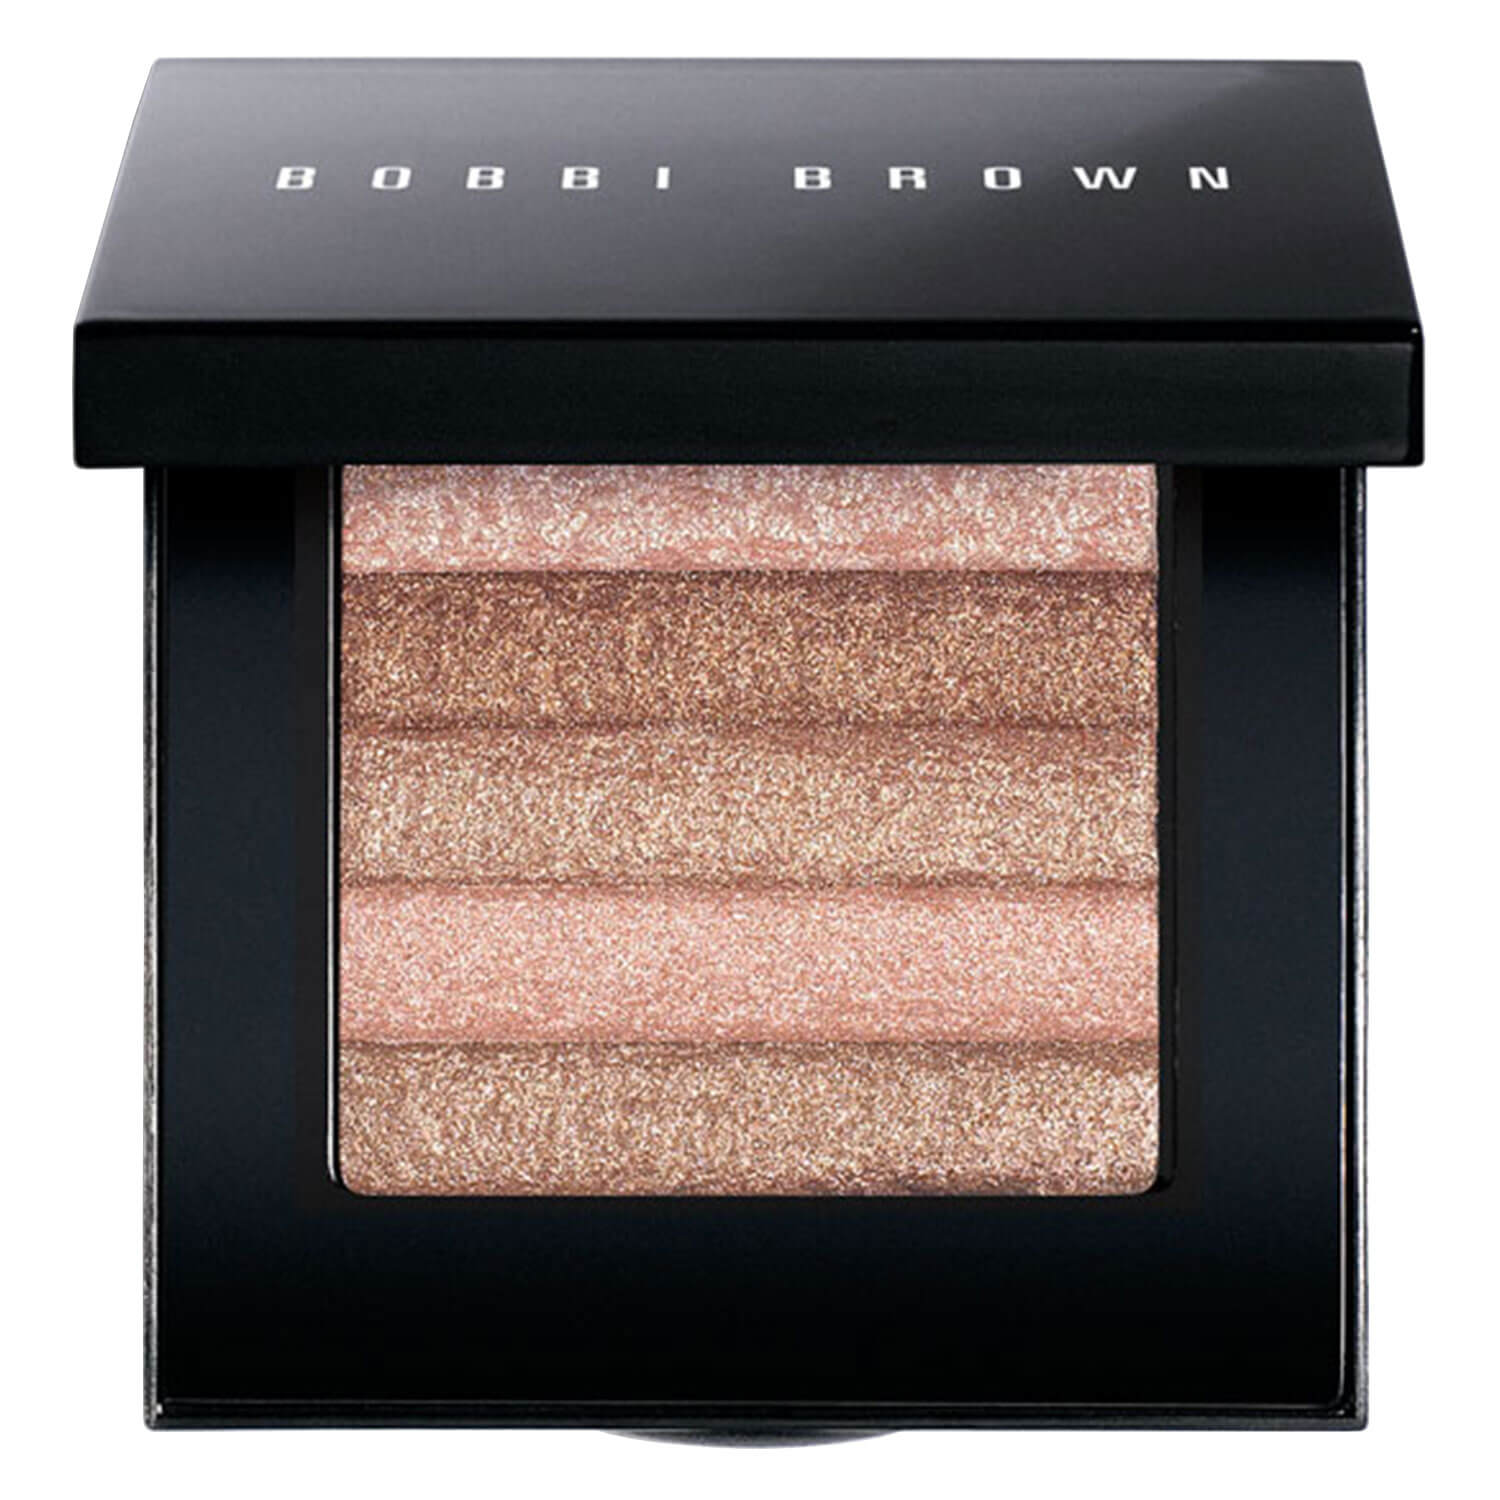 BB Highlight & Glow - Shimmerbrick Pink Quartz